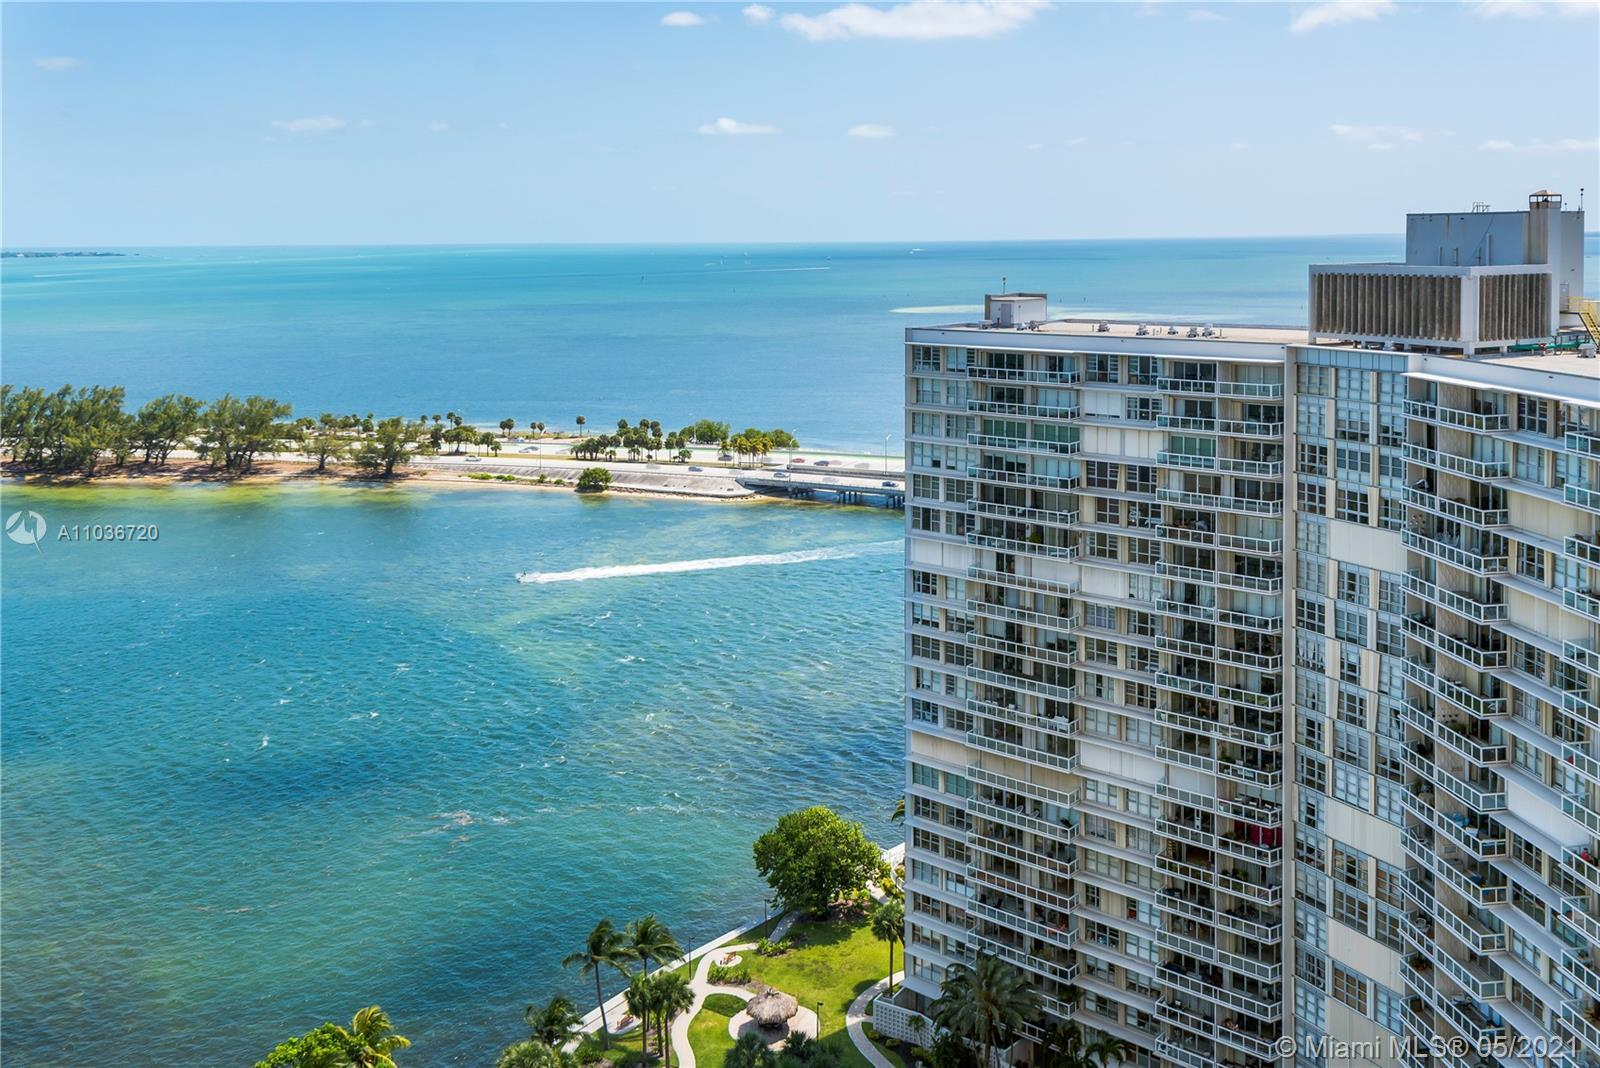 Located in the Heart of South Florida's Financial District, this family friendly community is surrou